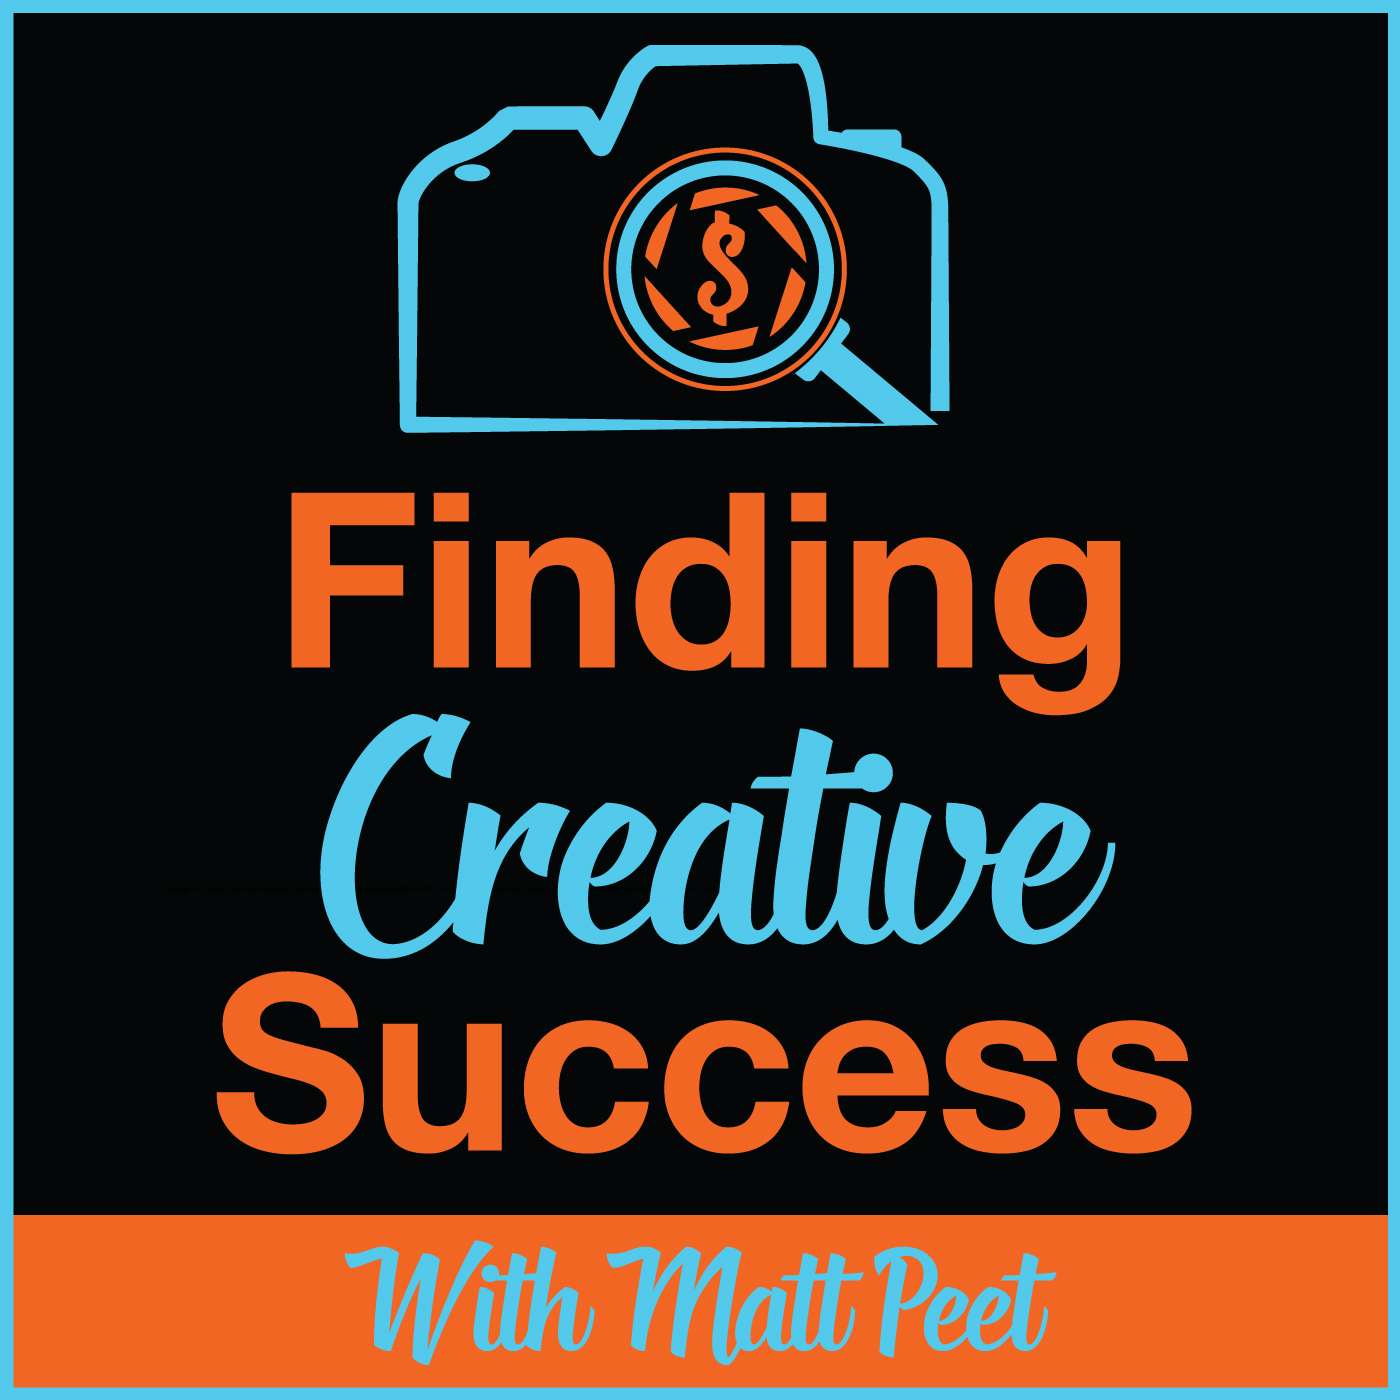 FCS 087: Stretching Yourself Too Thin. show art